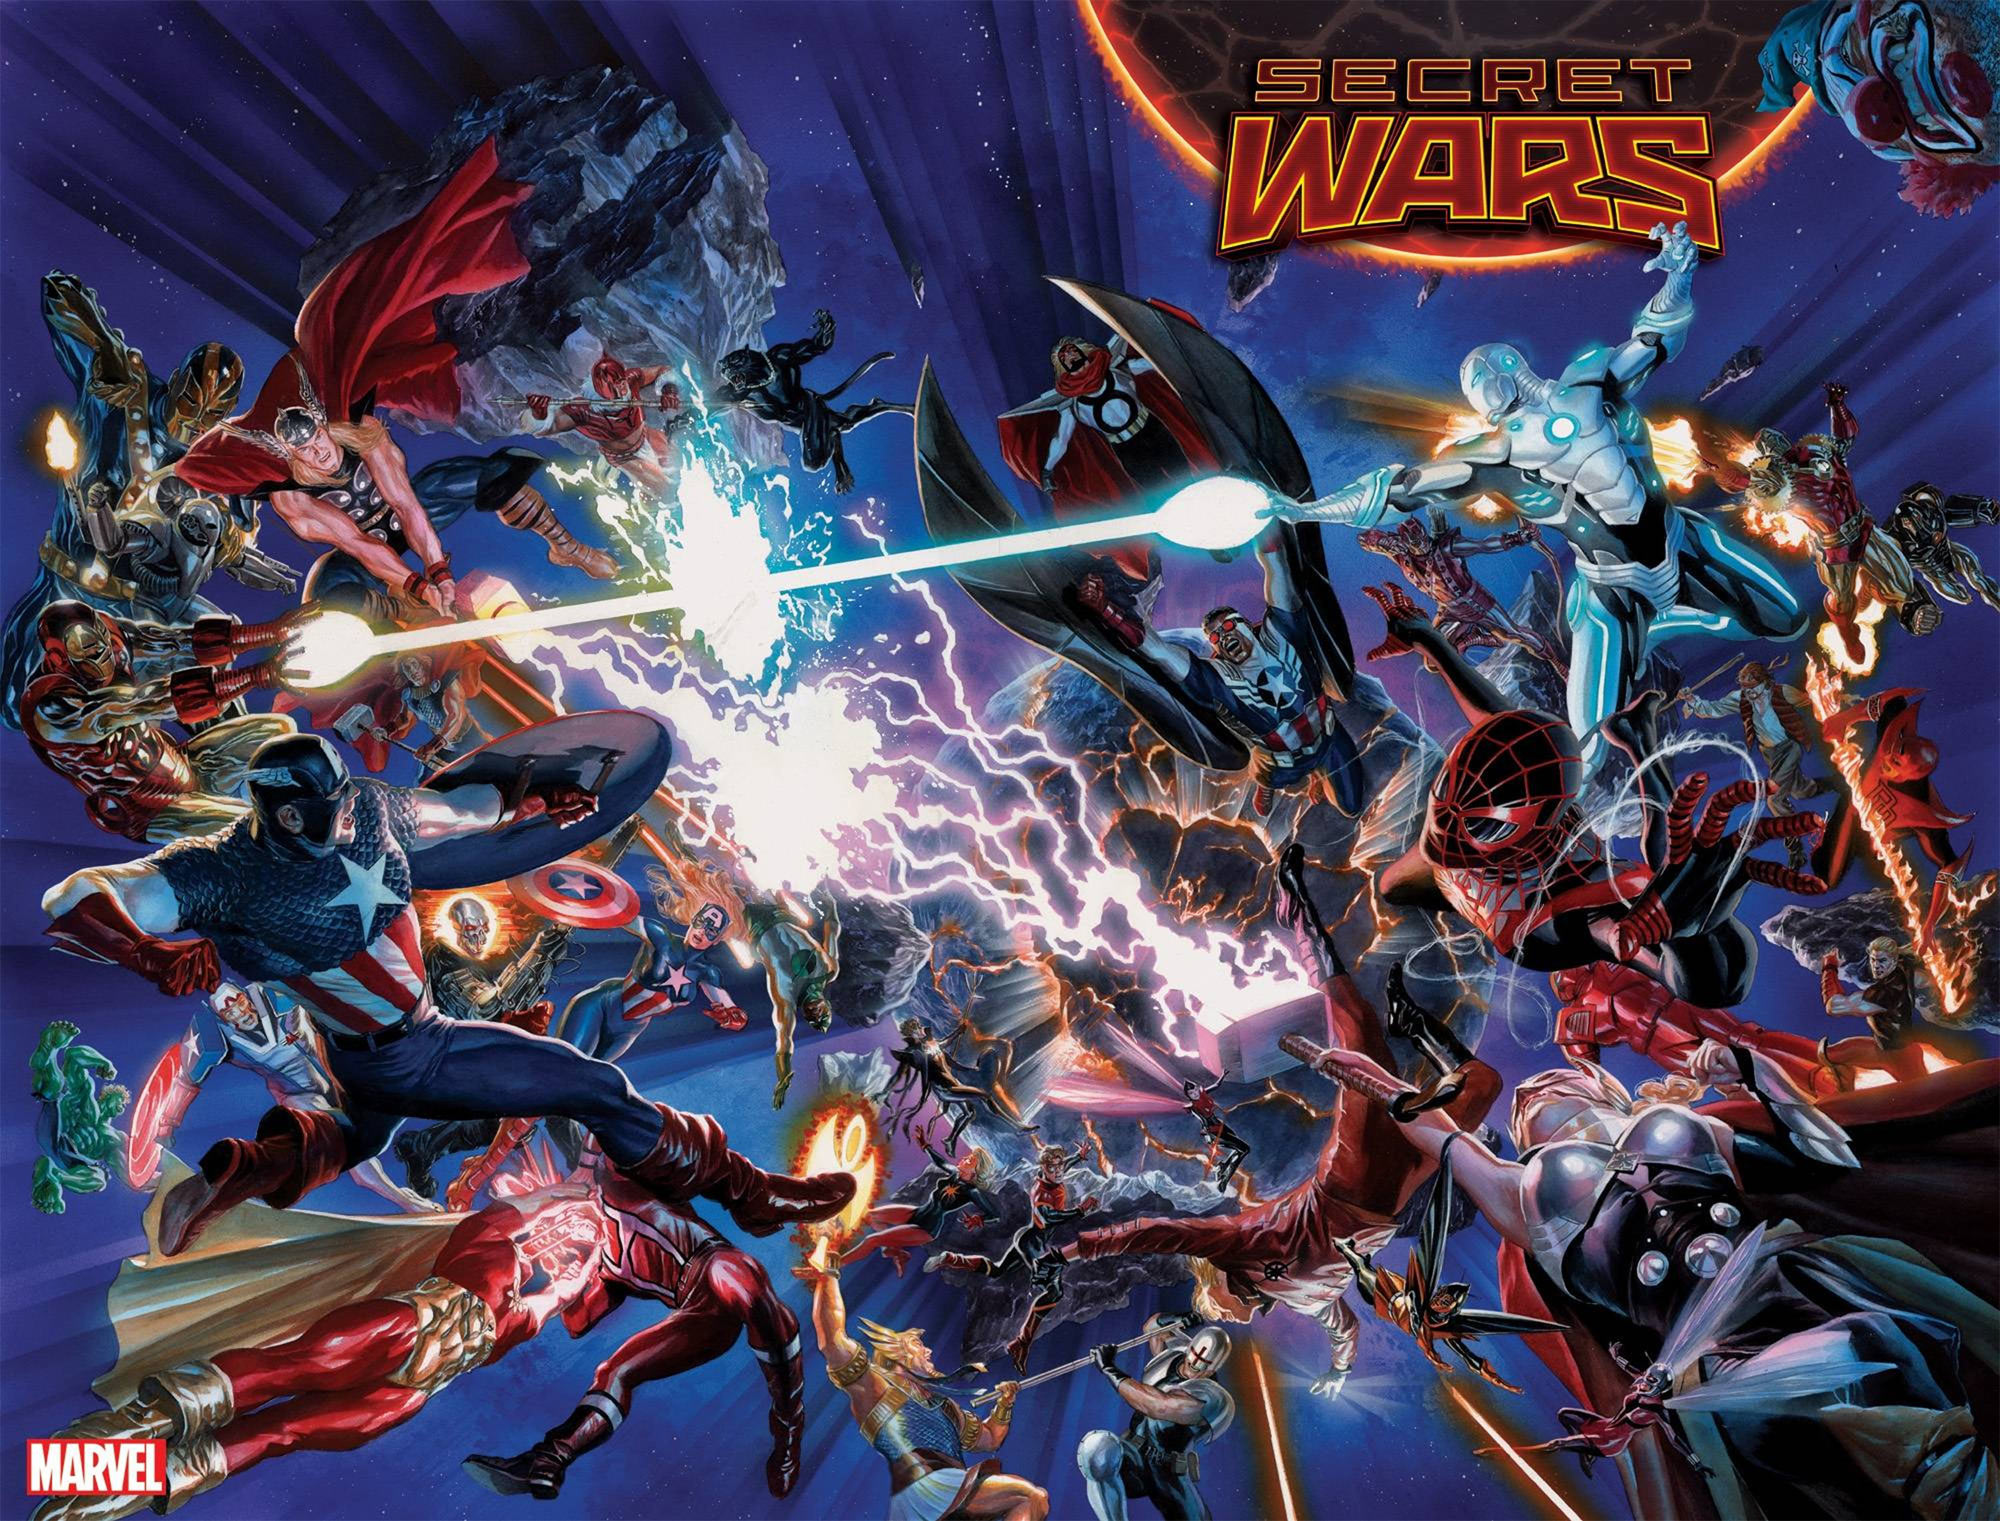 Marvel's Secret Wars event starts today: Here's what you need to know